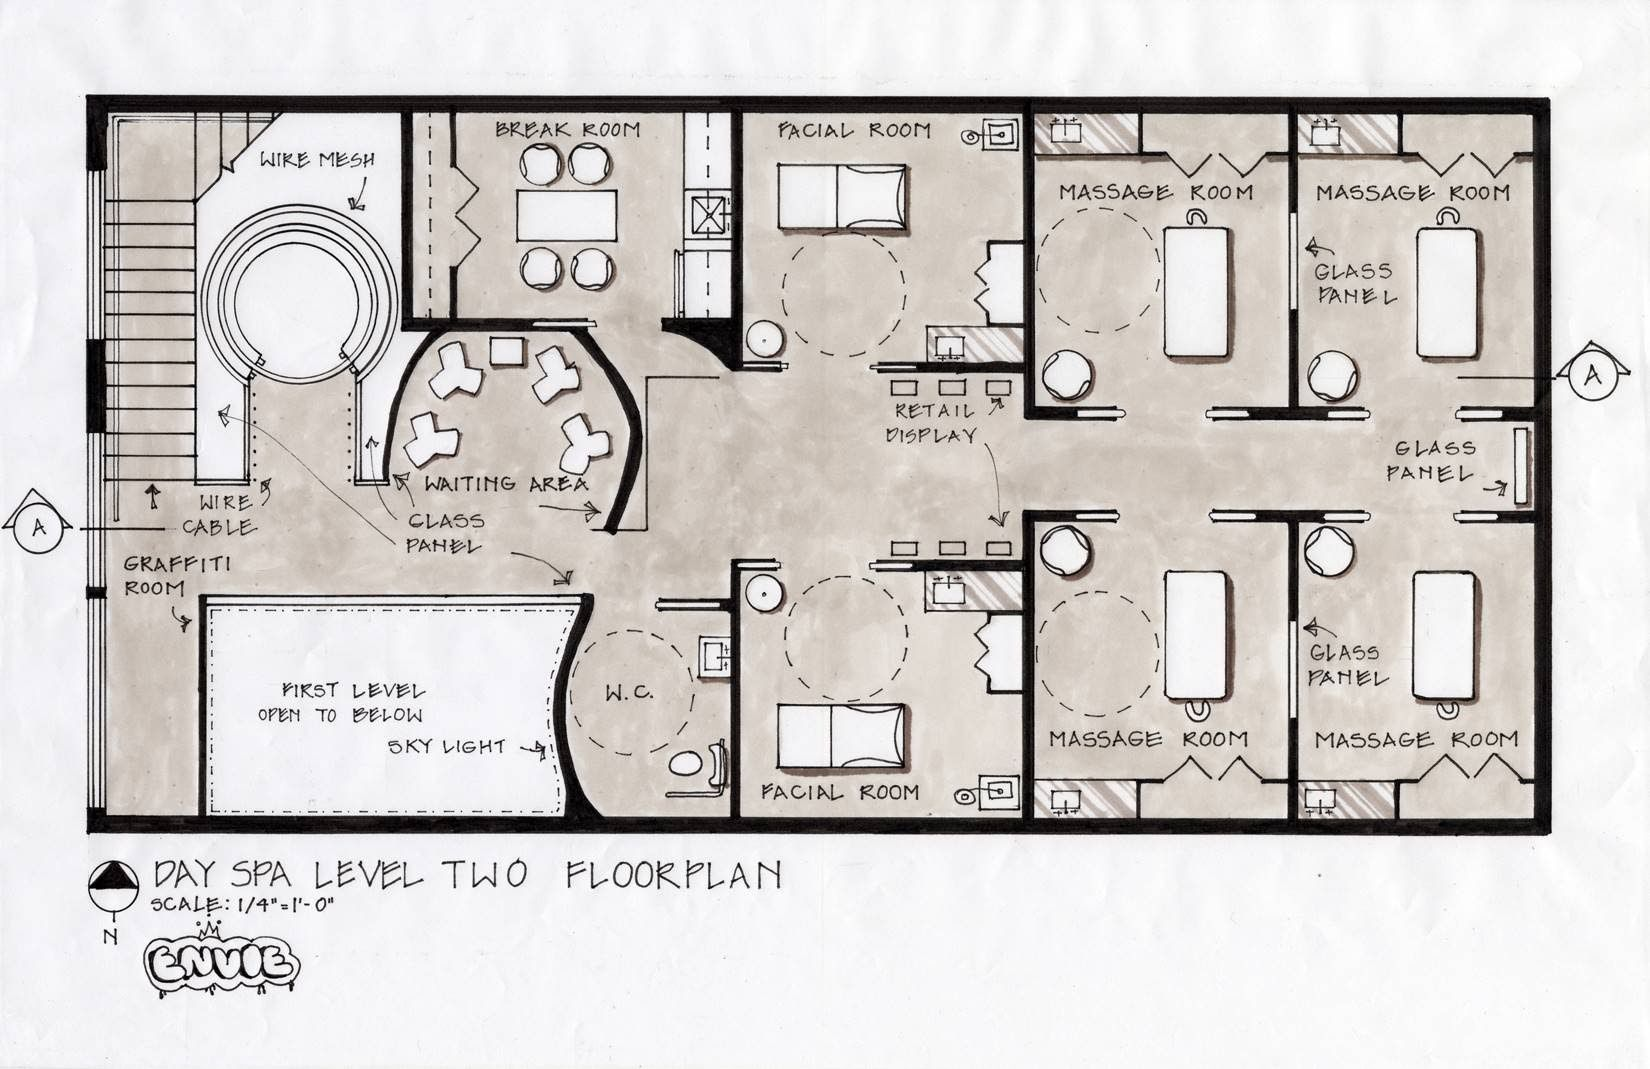 Day spa floor plan interior plann spa floor pinteres for Floor plan layout design